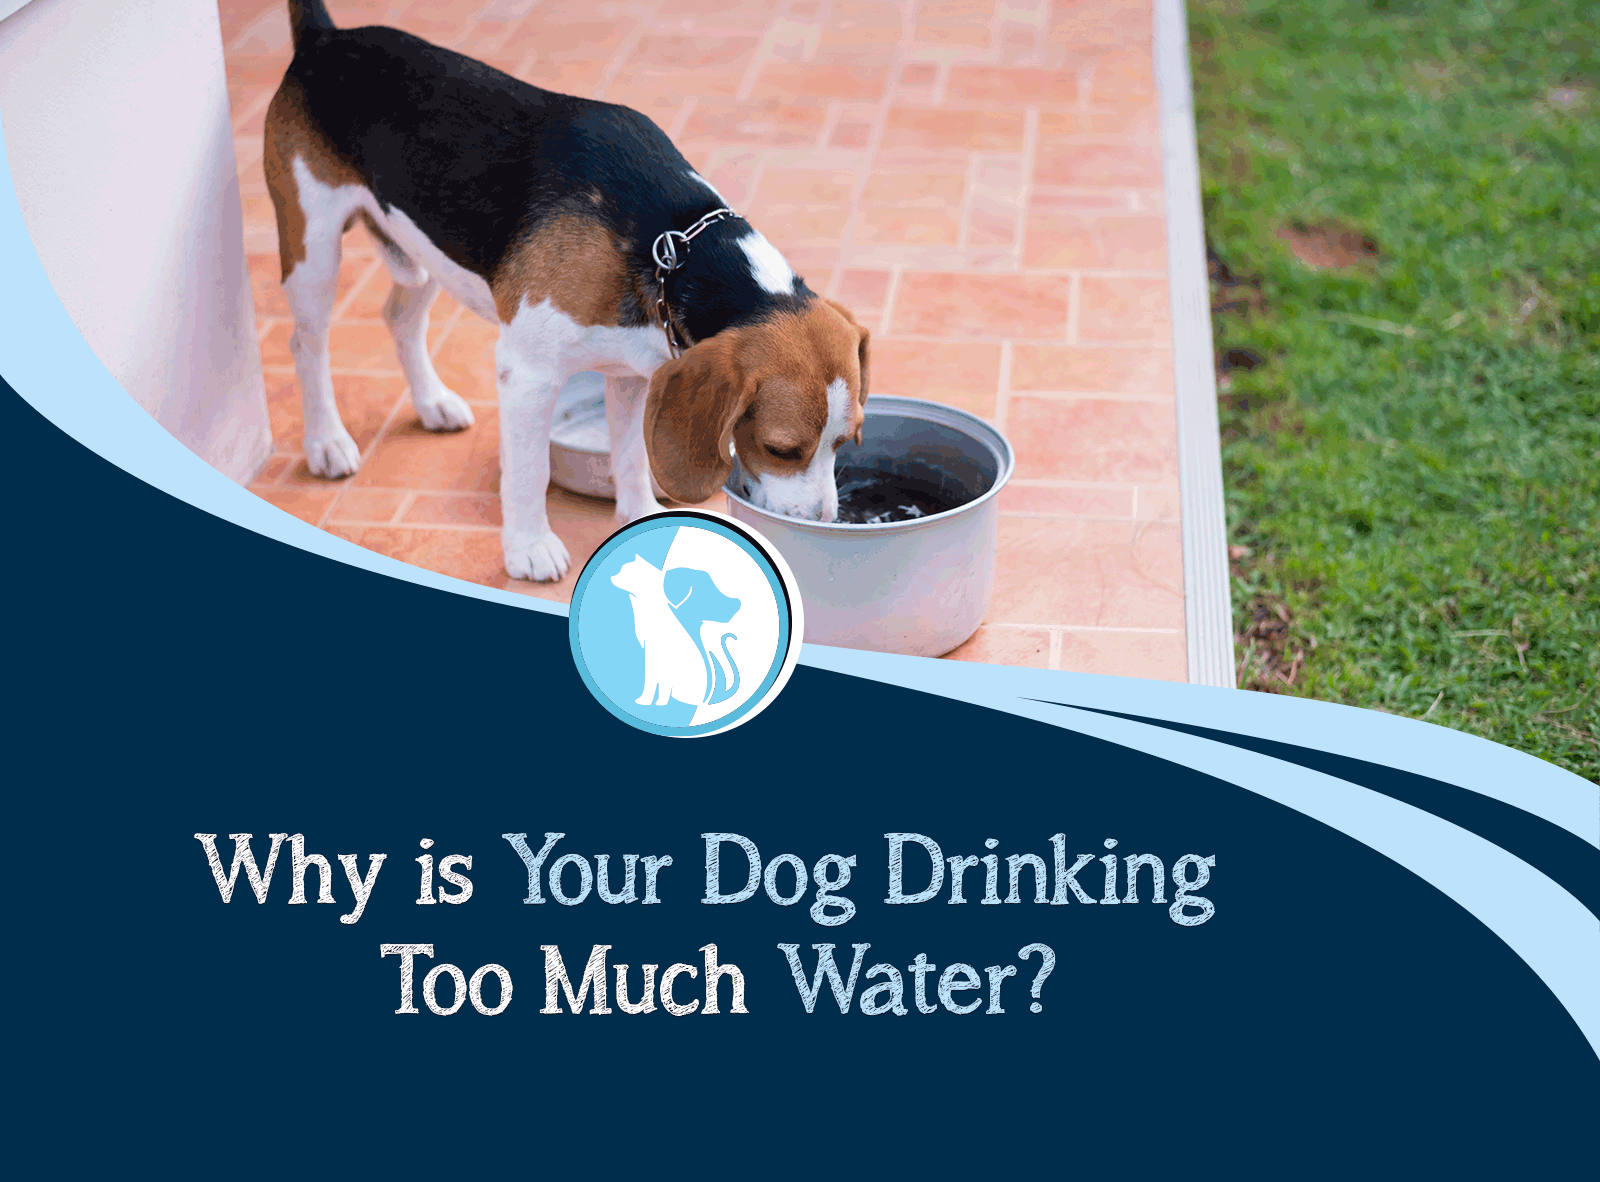 Why is Your Dog Drinking Too Much Water?